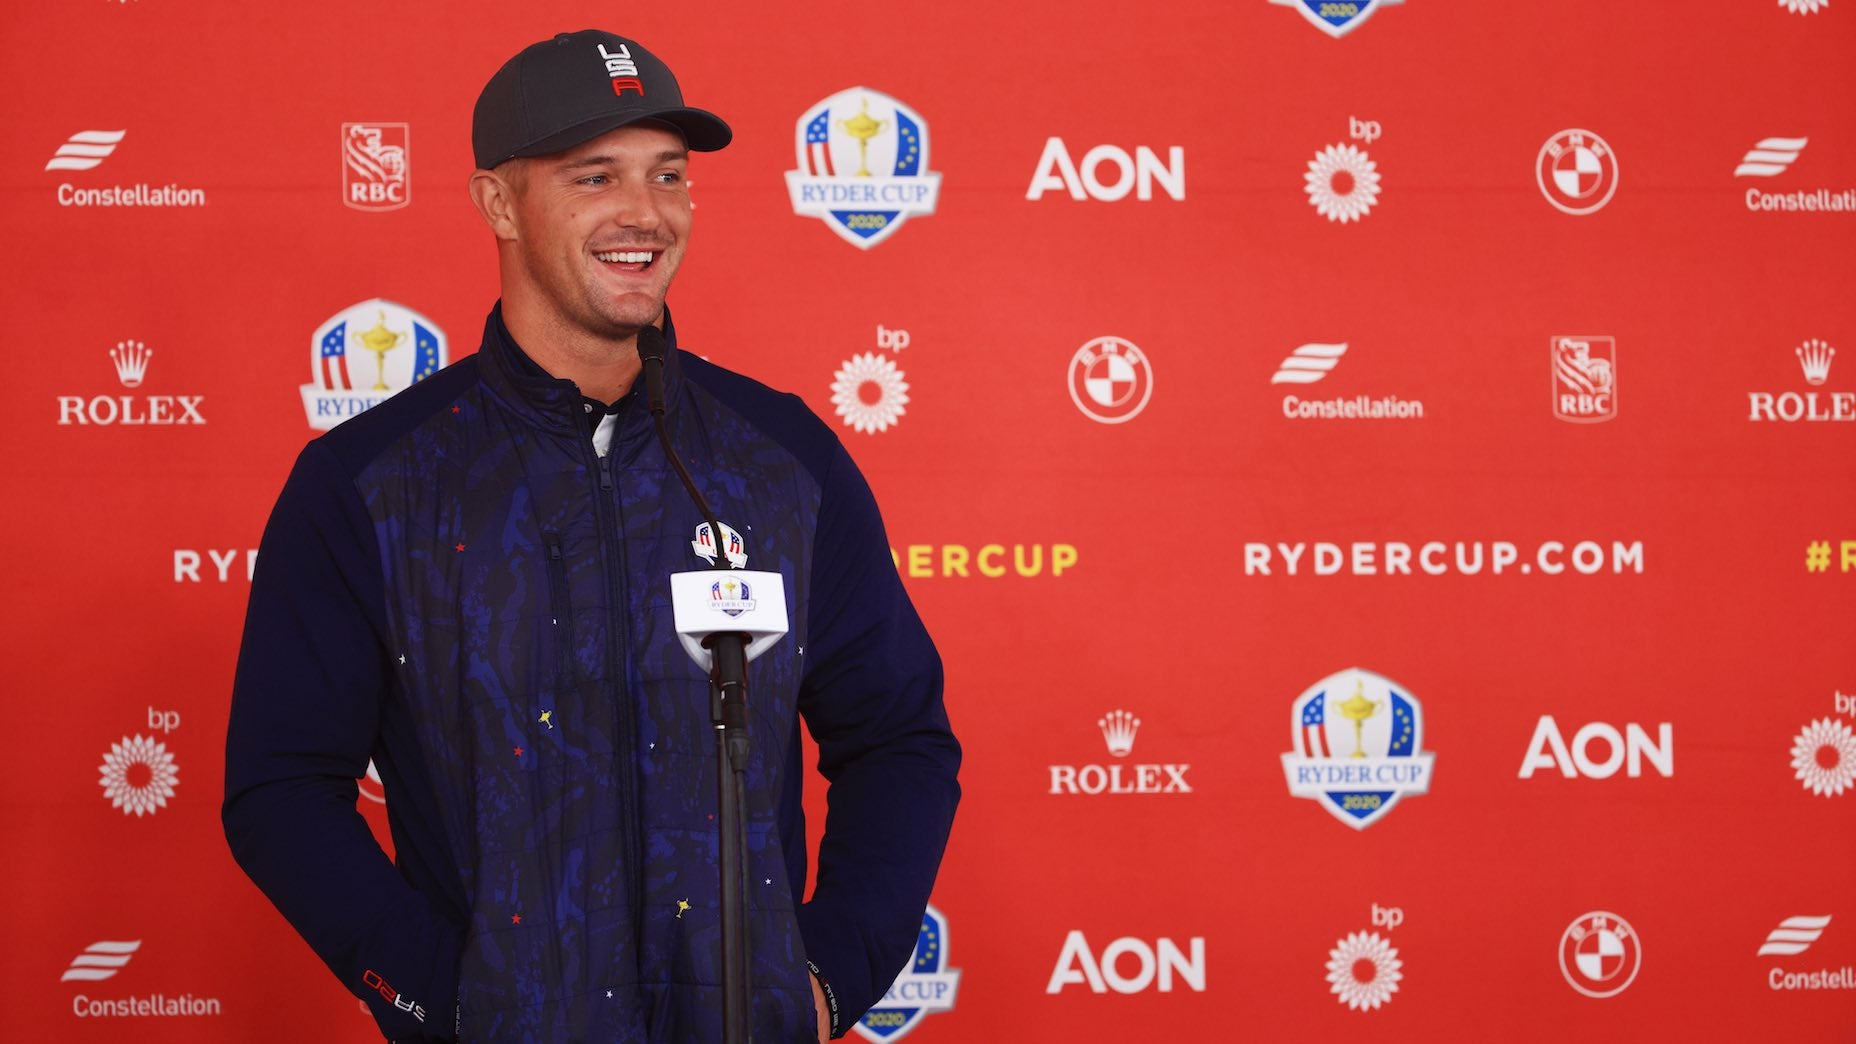 Bryson DeChambeau spoke with reporters for the first time in two months, discussing Brooks Koepka, fan behavior and Ryder Cup expectations.